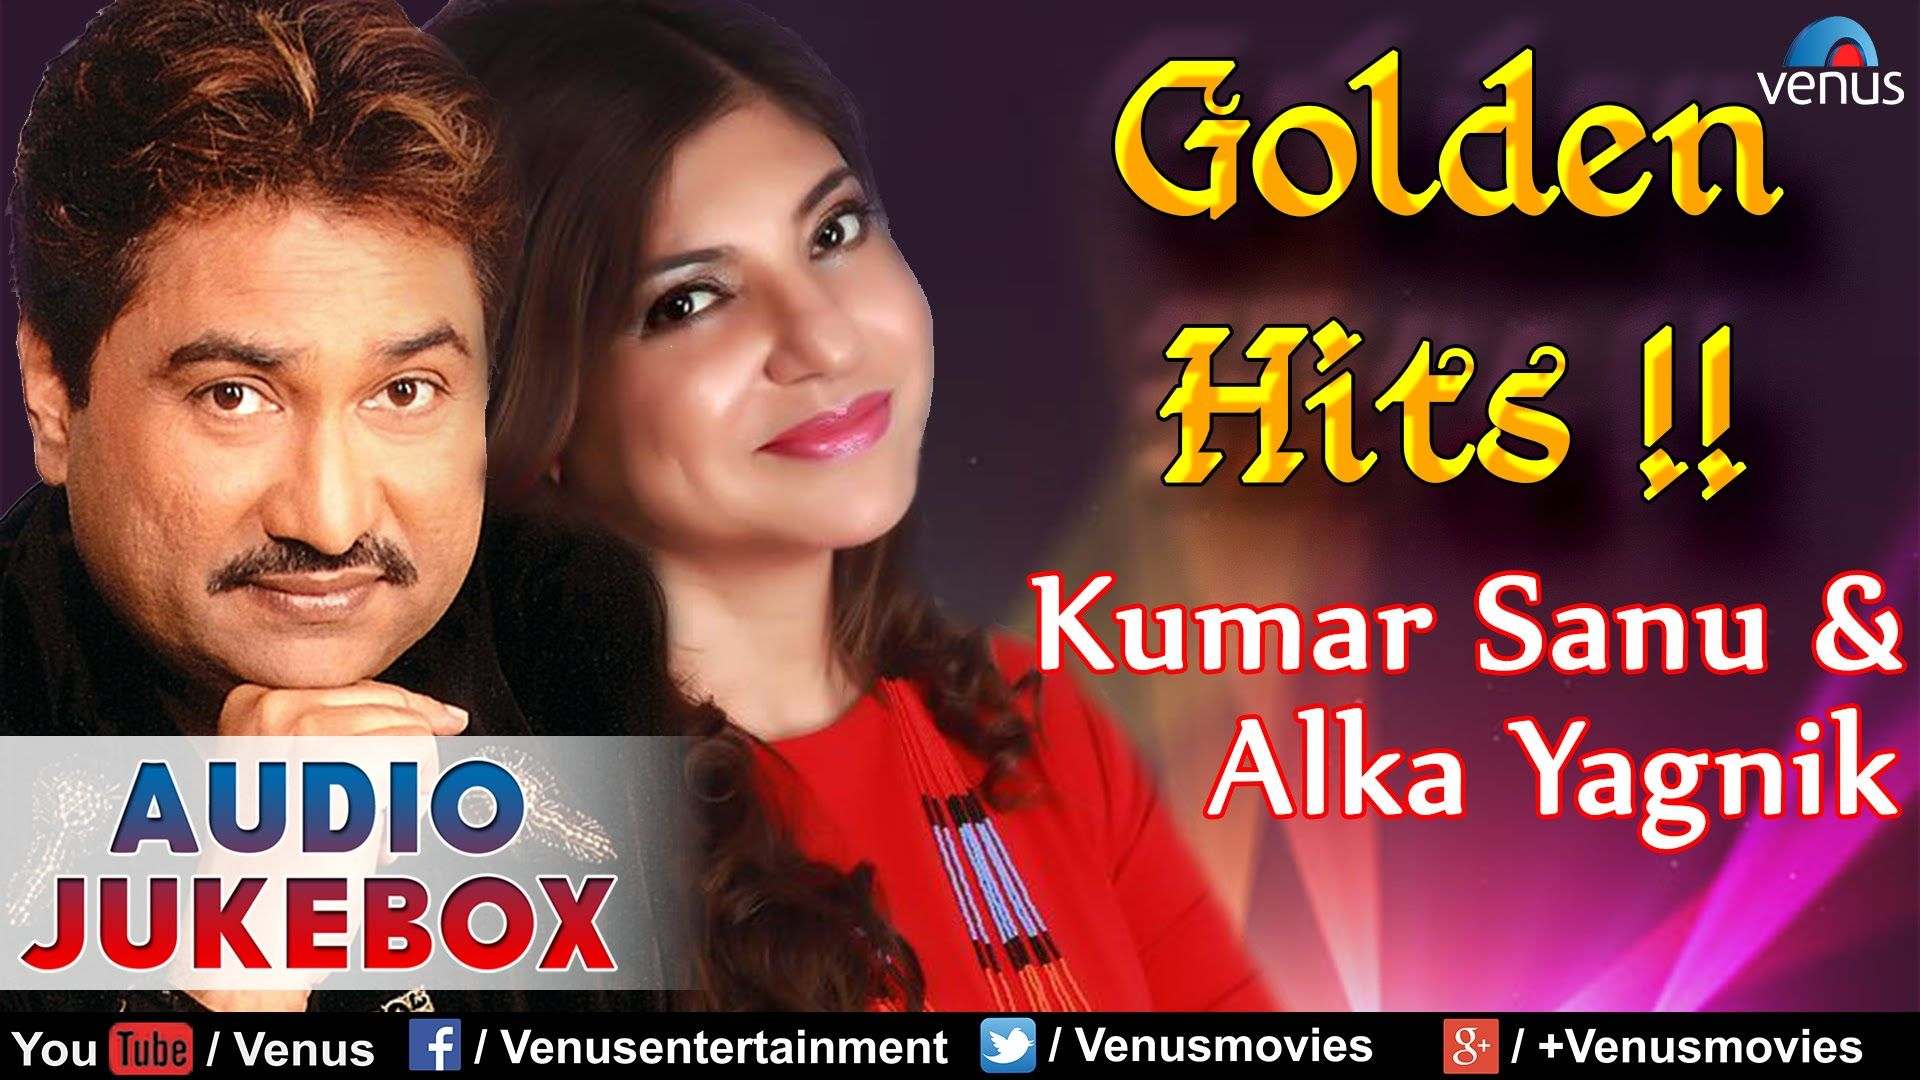 Kumar Sanu Alka Yagnik Golden Hits Best Of 90 S Audio Jukebox Lagu Lagu Terbaik Youtube